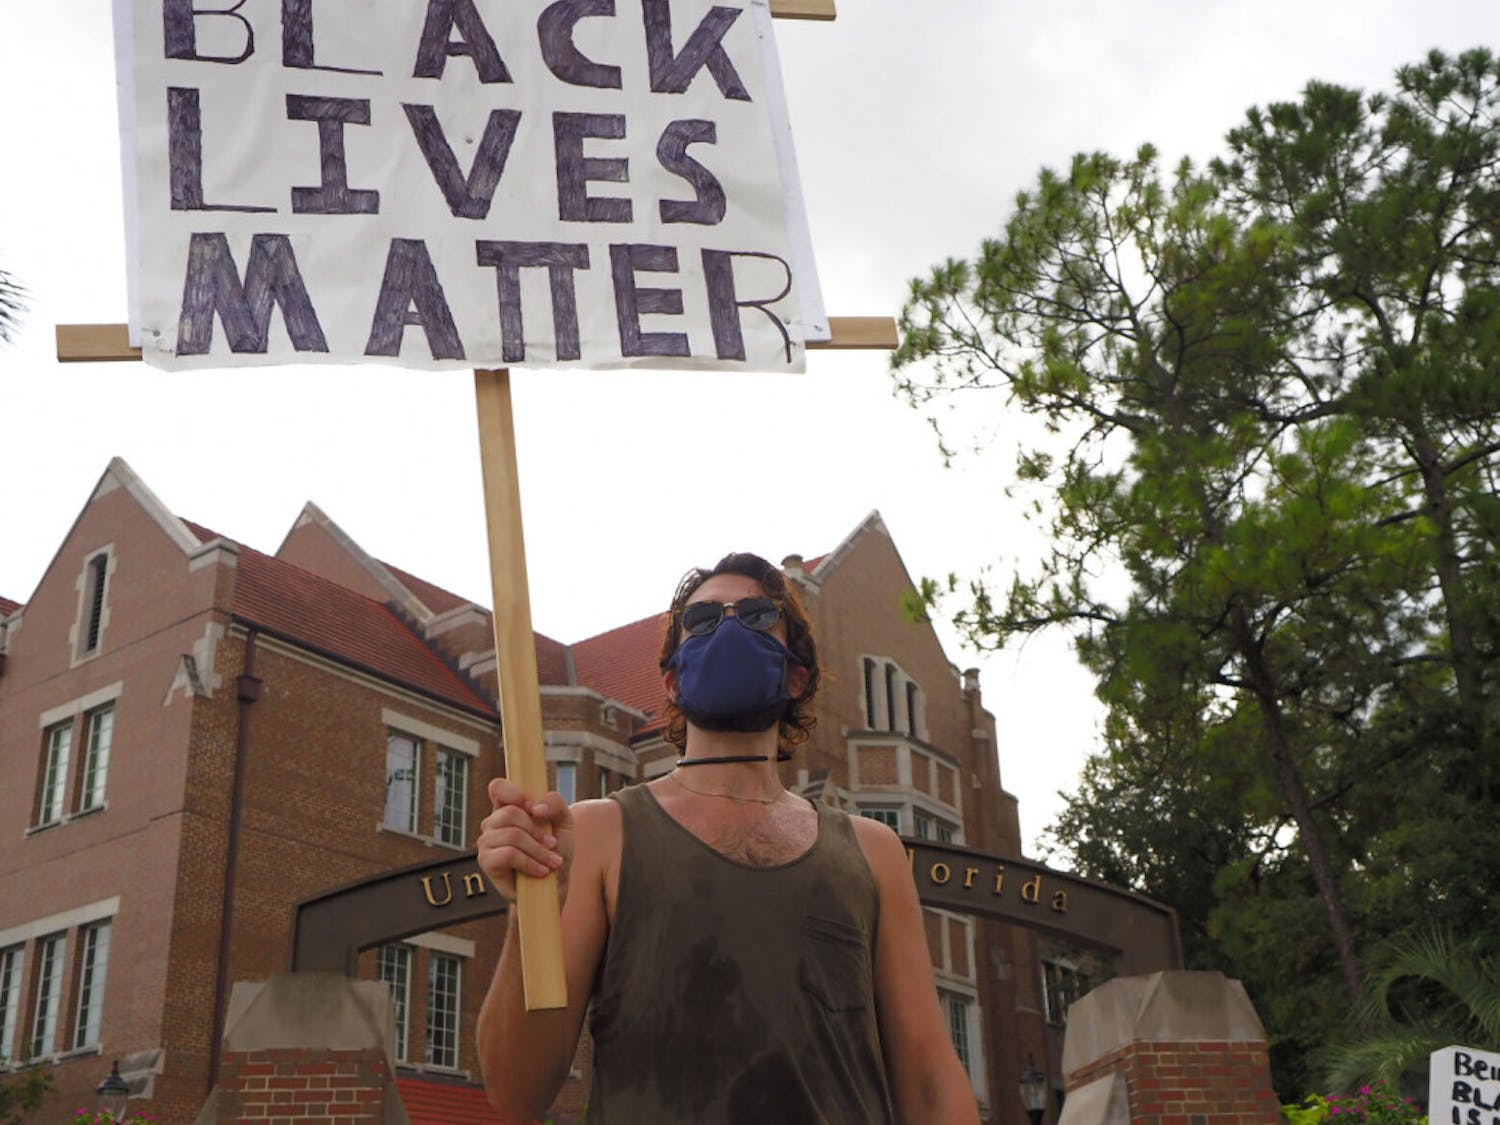 More than 200 masked people gathered Friday evening at the intersection of University Avenue and 13th Street and marched downtown to Bo Diddley Community Plaza to protest the shooting of 29-year-old Jacob Blake, a Black man shot by police while entering his car after he was tased. Follow the tweets posted by The Alligator's staff live from the protest.